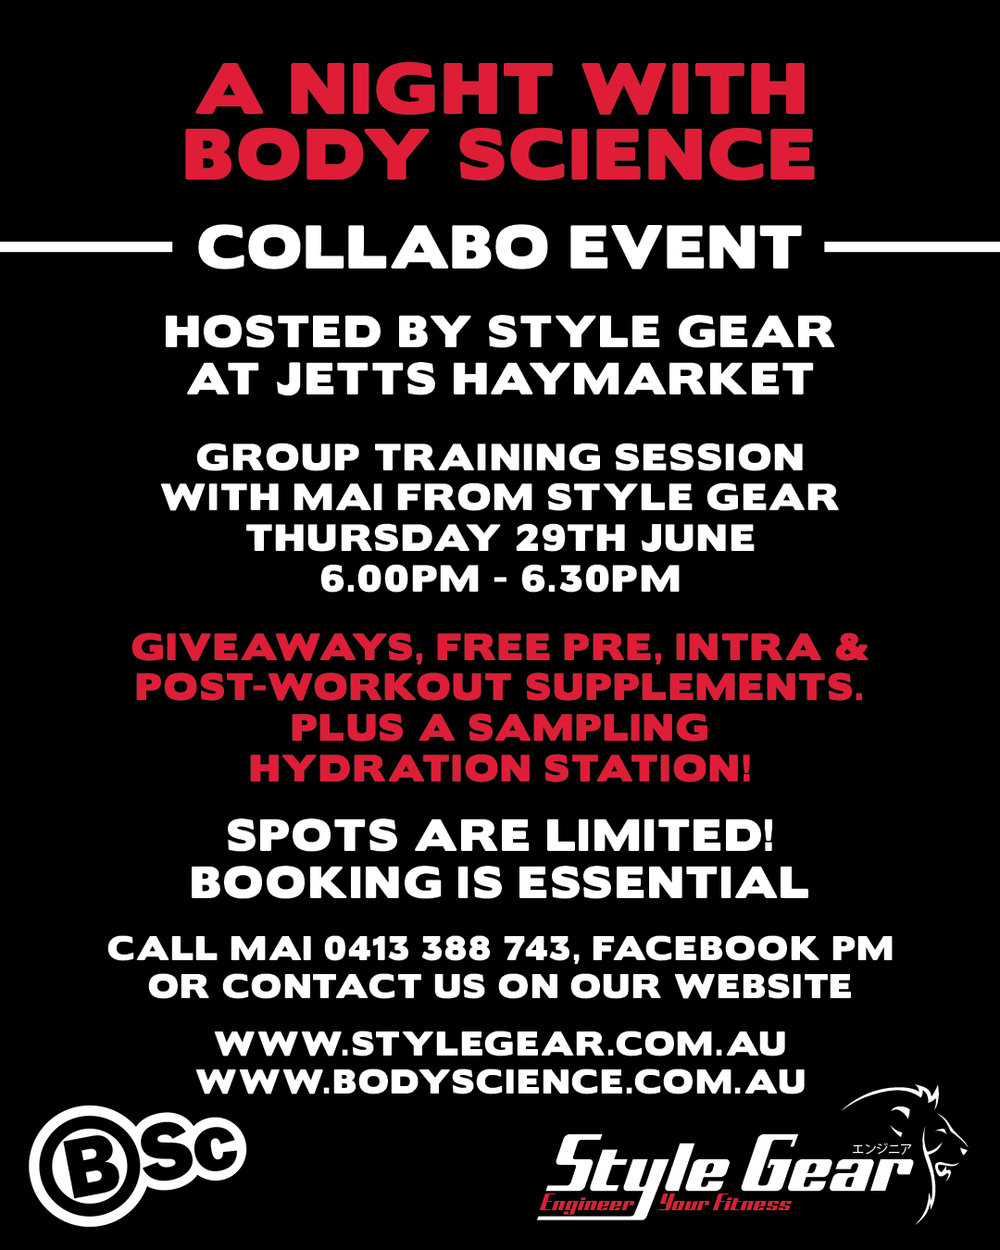 A Night with Body Science - A special night at Jetts hosted by Style Gear on Thursday 29th June. We are going to be joined by BSC from 5.30pm, with giveaways, free pre, intra and post-workout supplements. Plus a free sampling hydration station! There will be a group training session, hosted by Mai from 6.00pm–6.30pm.Spots will be limited so please contact Mai and book your spot. We look forward to seeing you there!